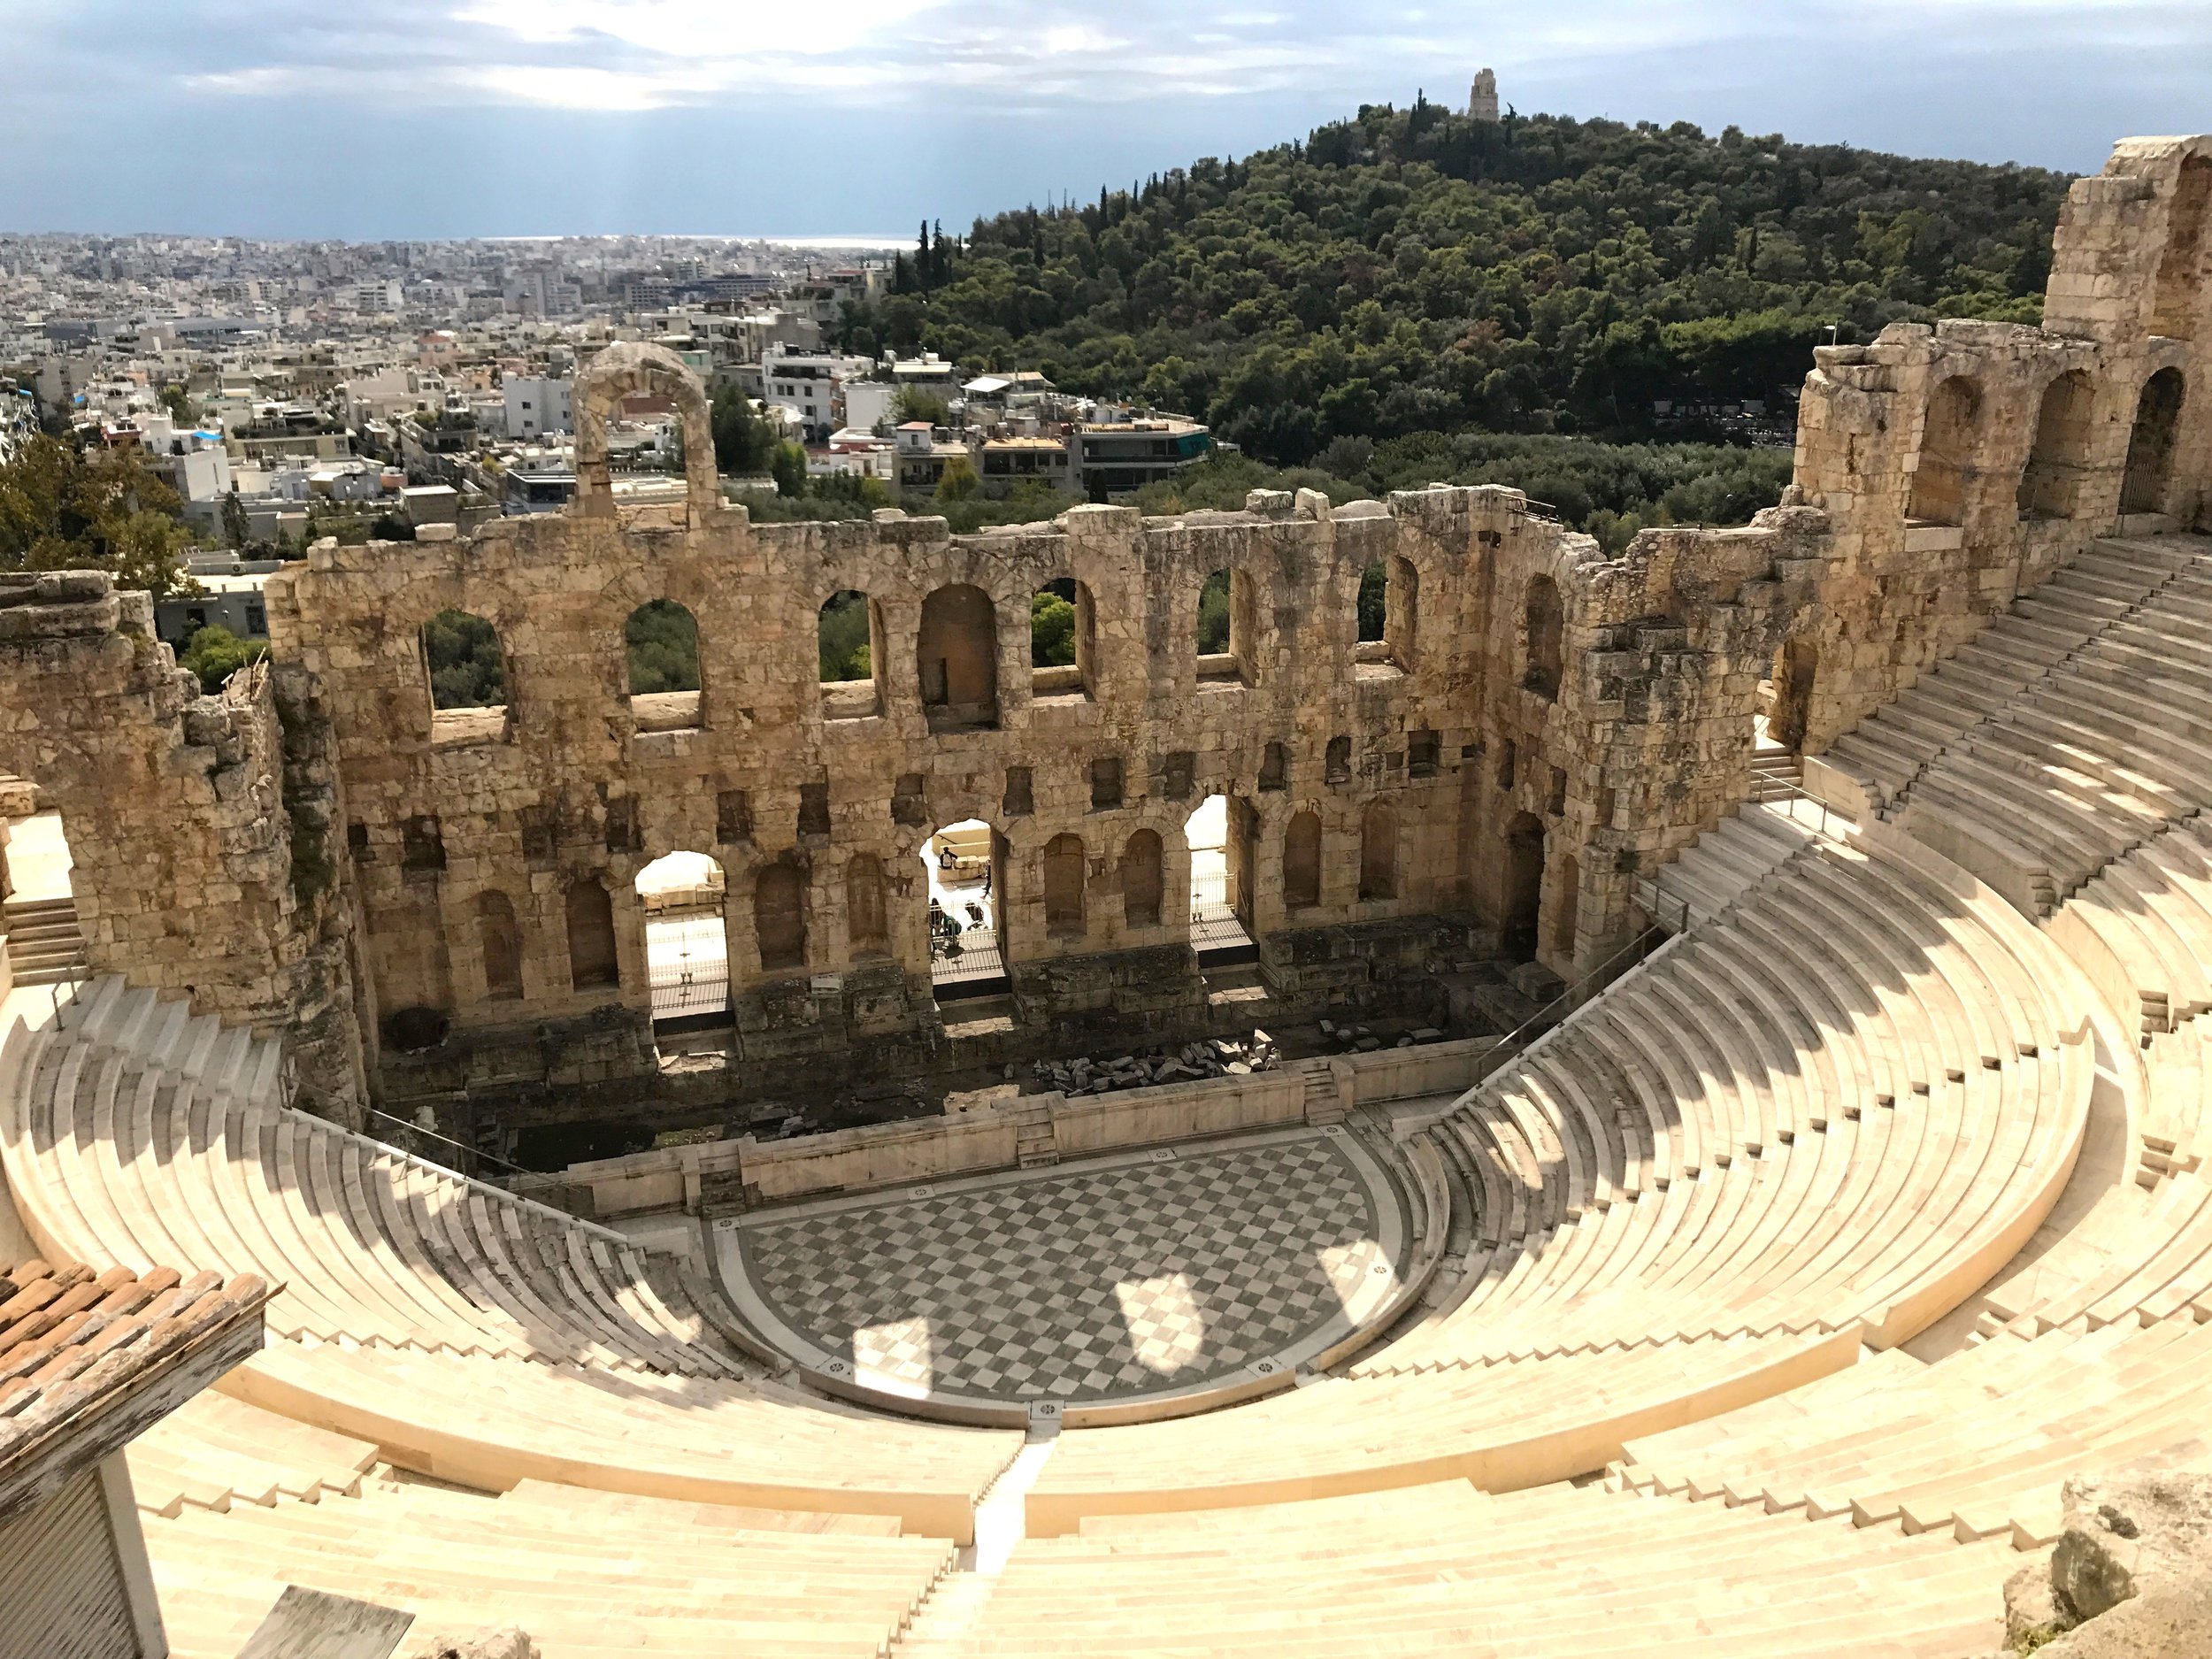 Amphitheater on the Way Up to the Acropolis